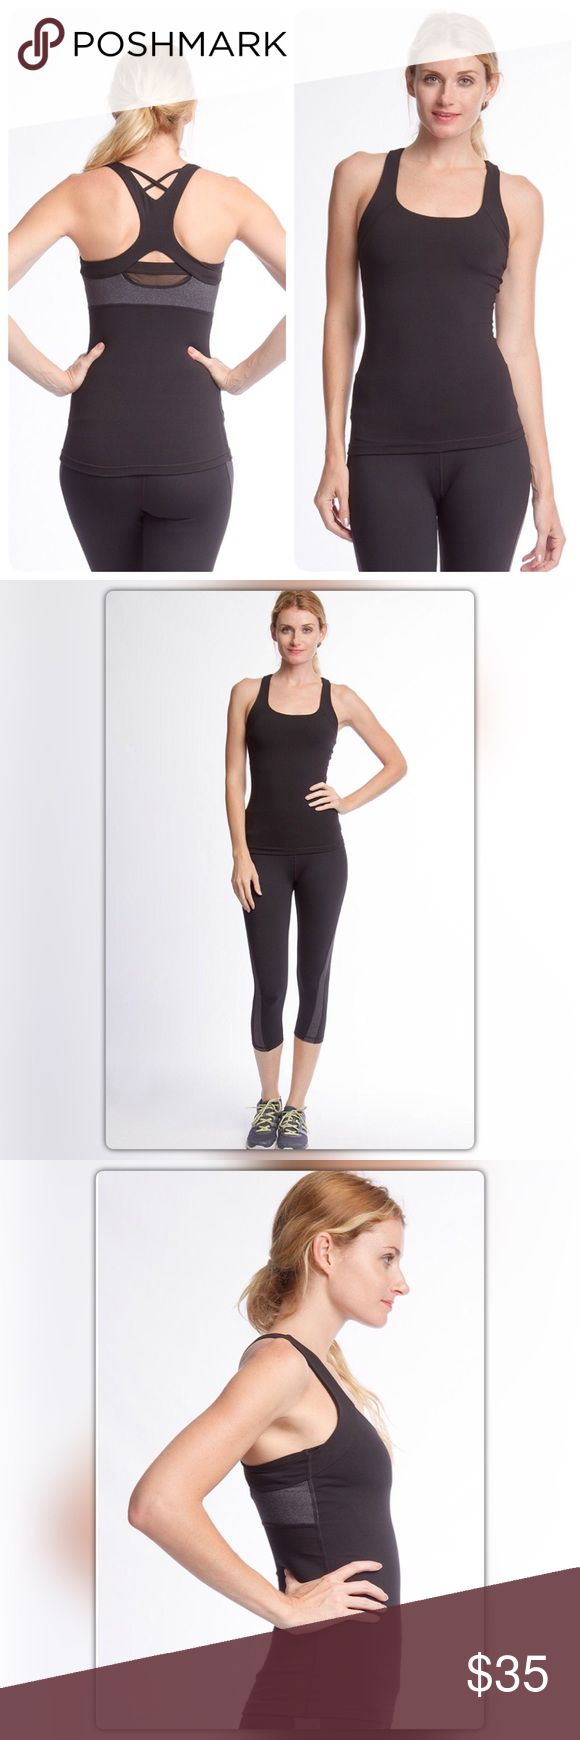 Black and Gray Athletic Tank Top Black never looked so good! This athletic tank has a racer back with straps and a charcoal band. It is made of 87% nylon and 13% spandex for comfort and support. The NEW Boutique Tops Tank Tops